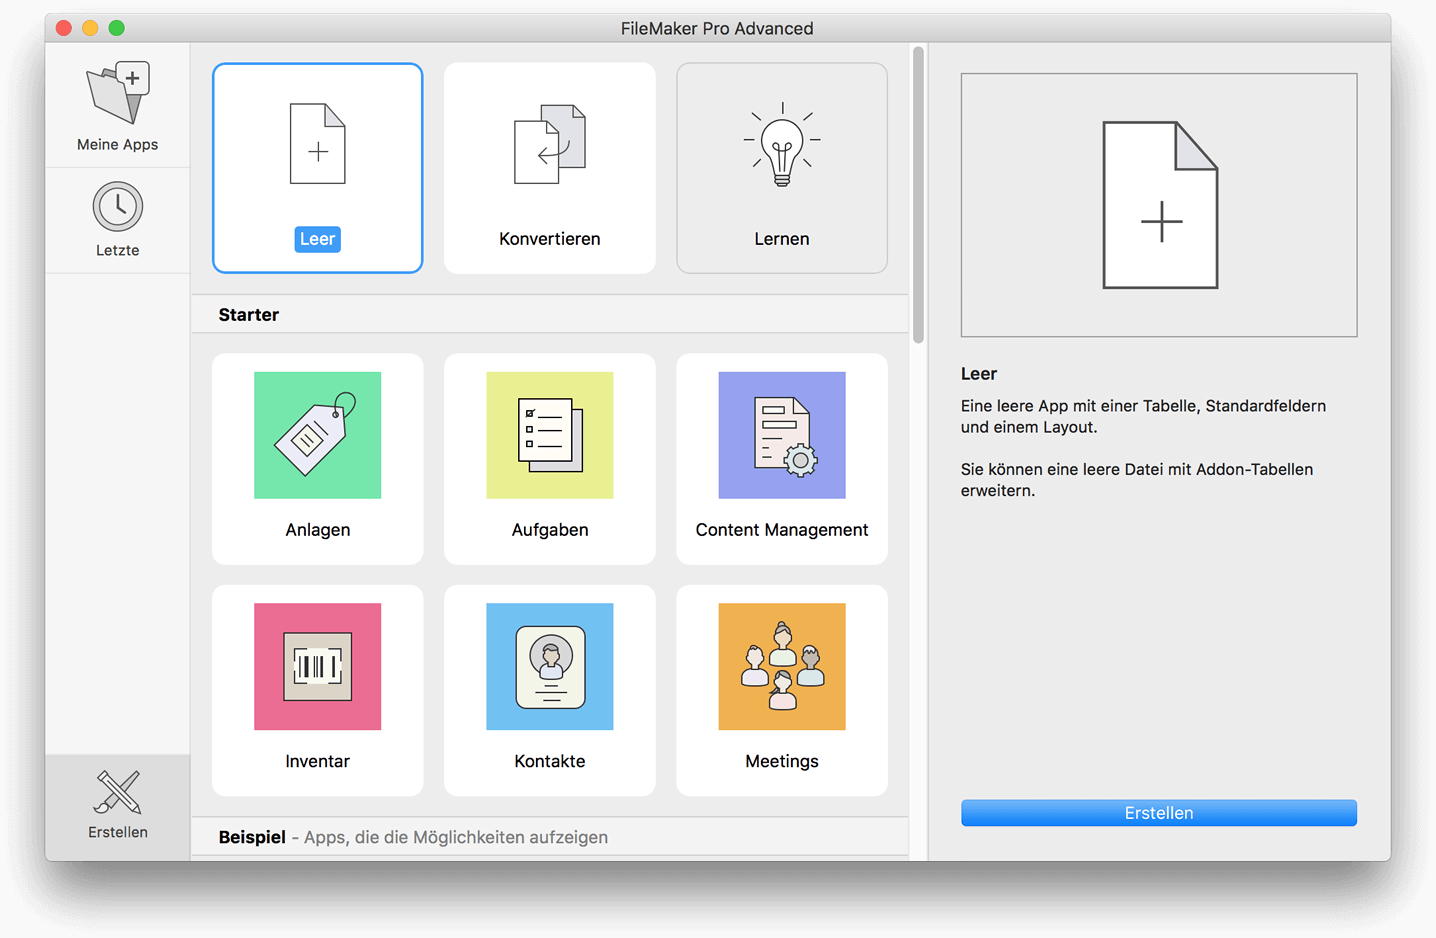 FileMaker Pro Advanced 17 für Mac und Windows